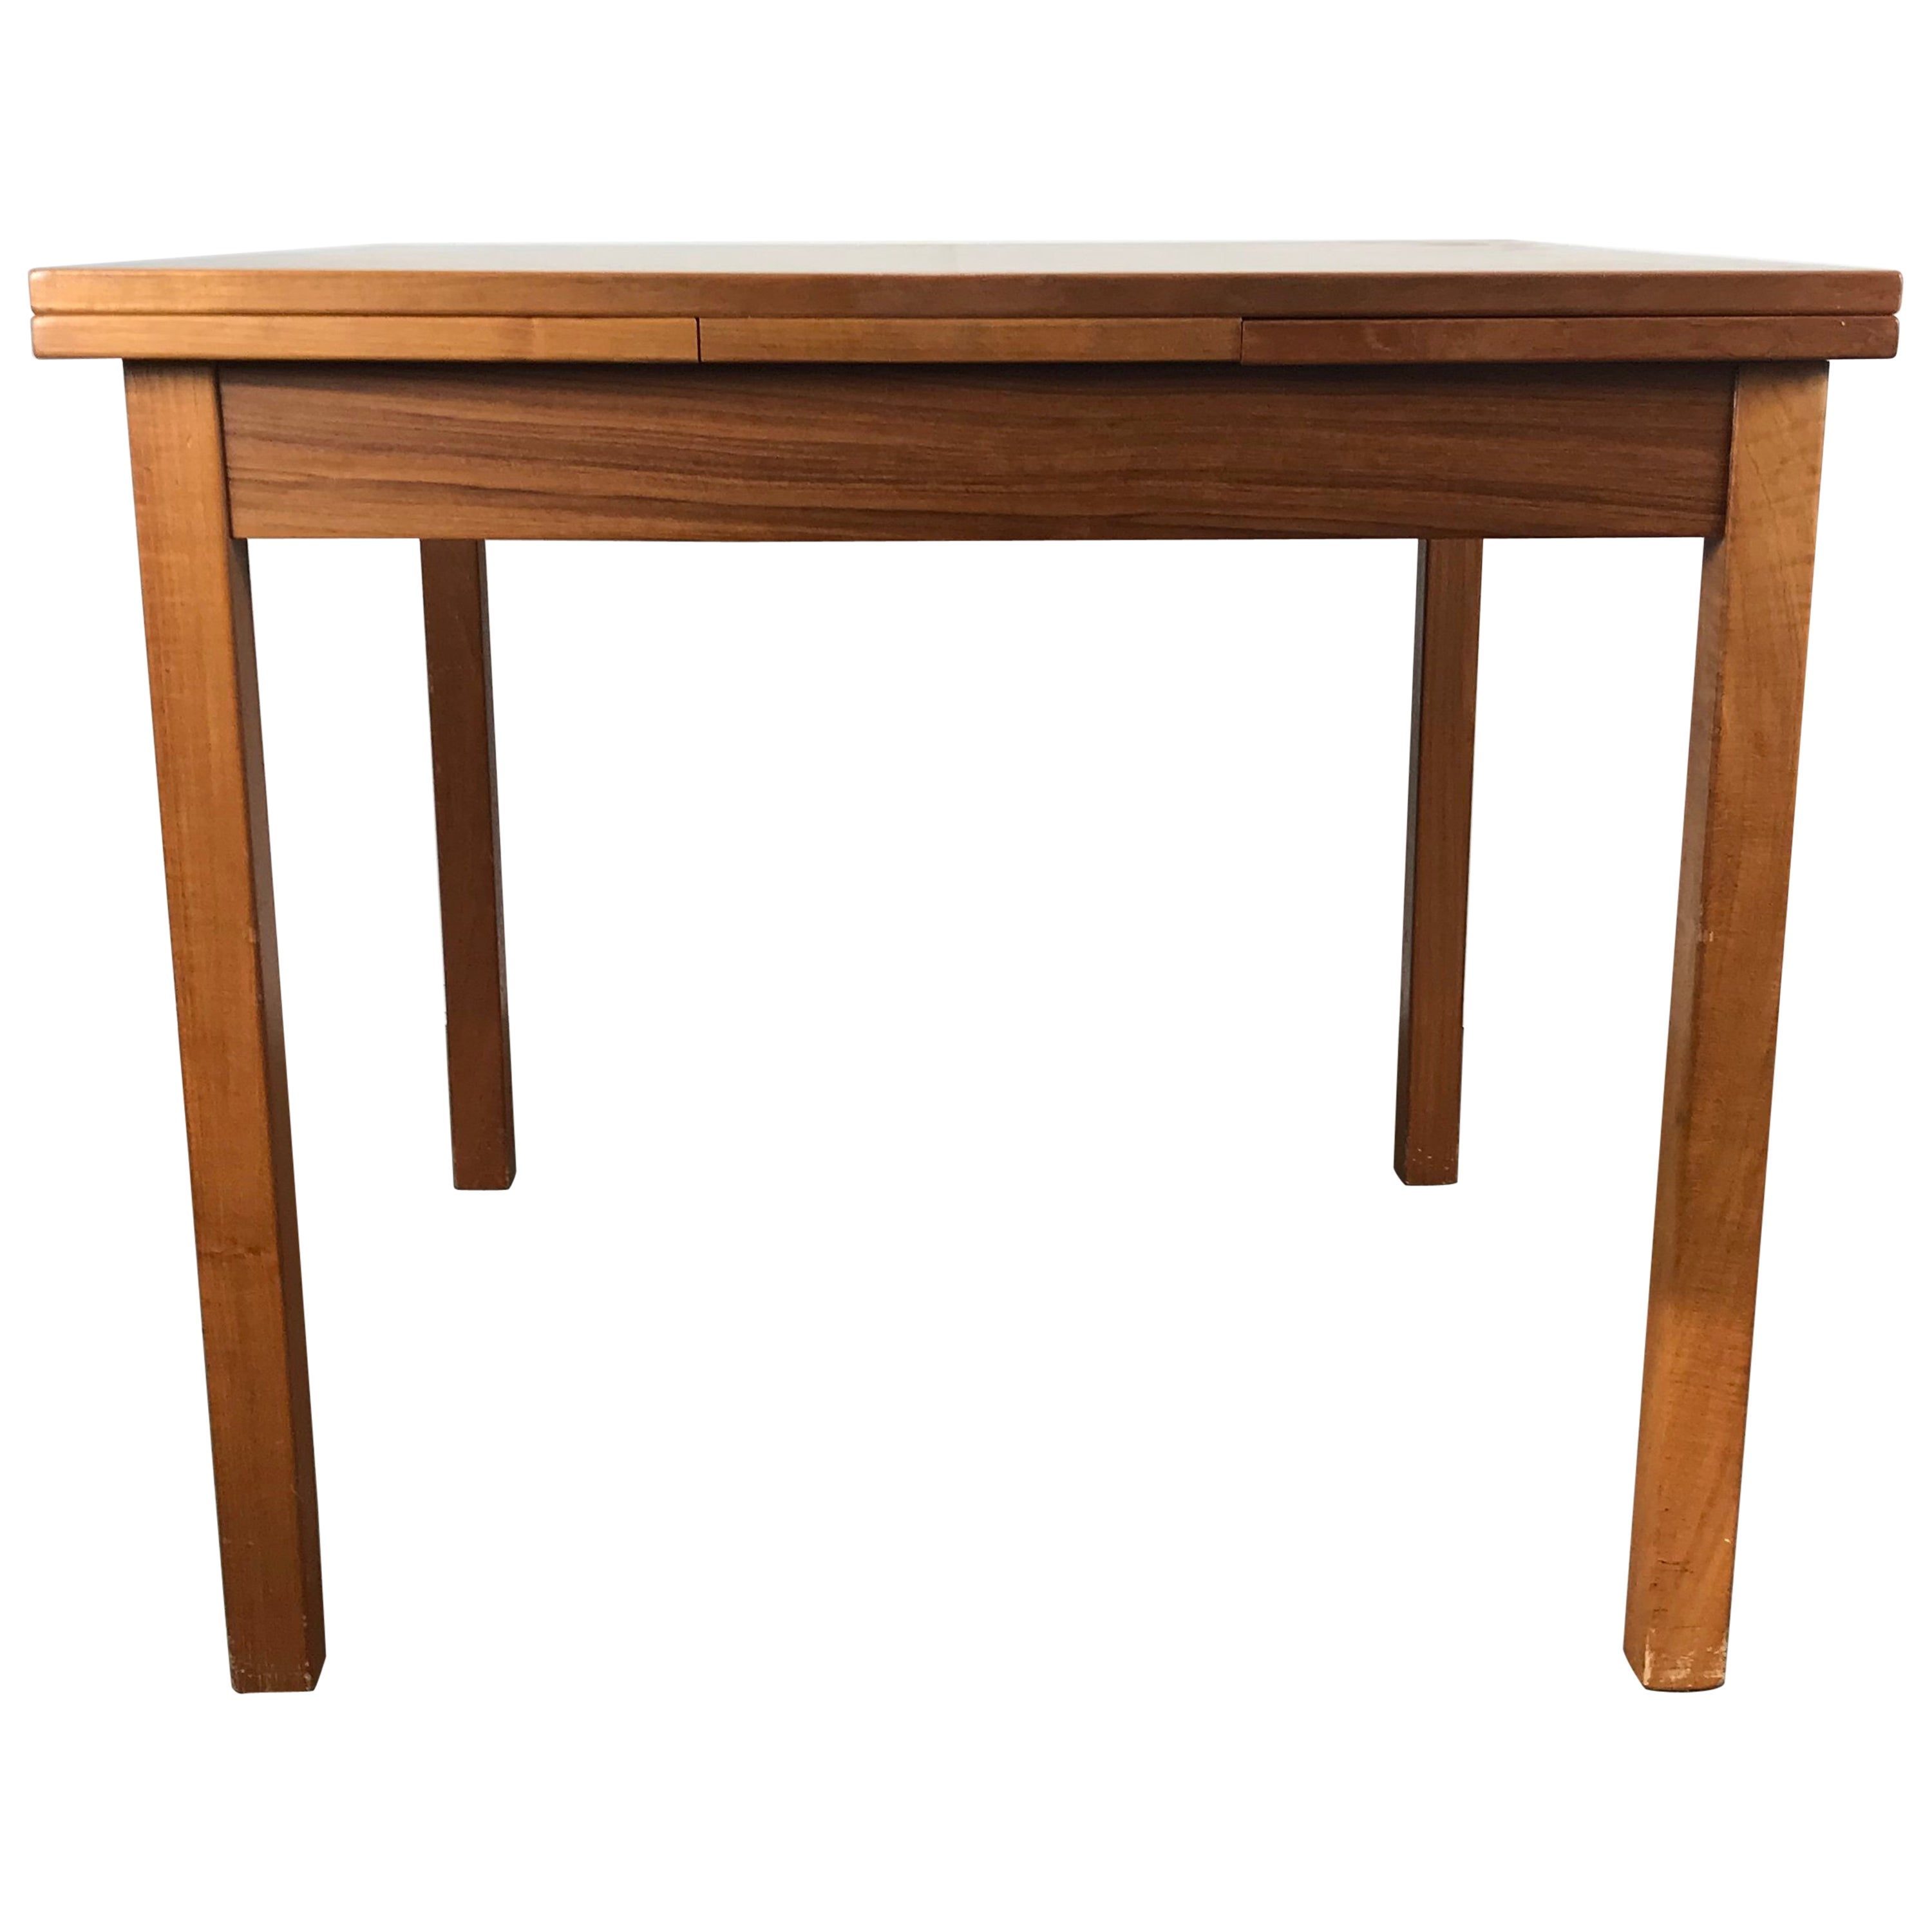 Sleek, Simple Expandable Teak Dining Table Made in Denmark